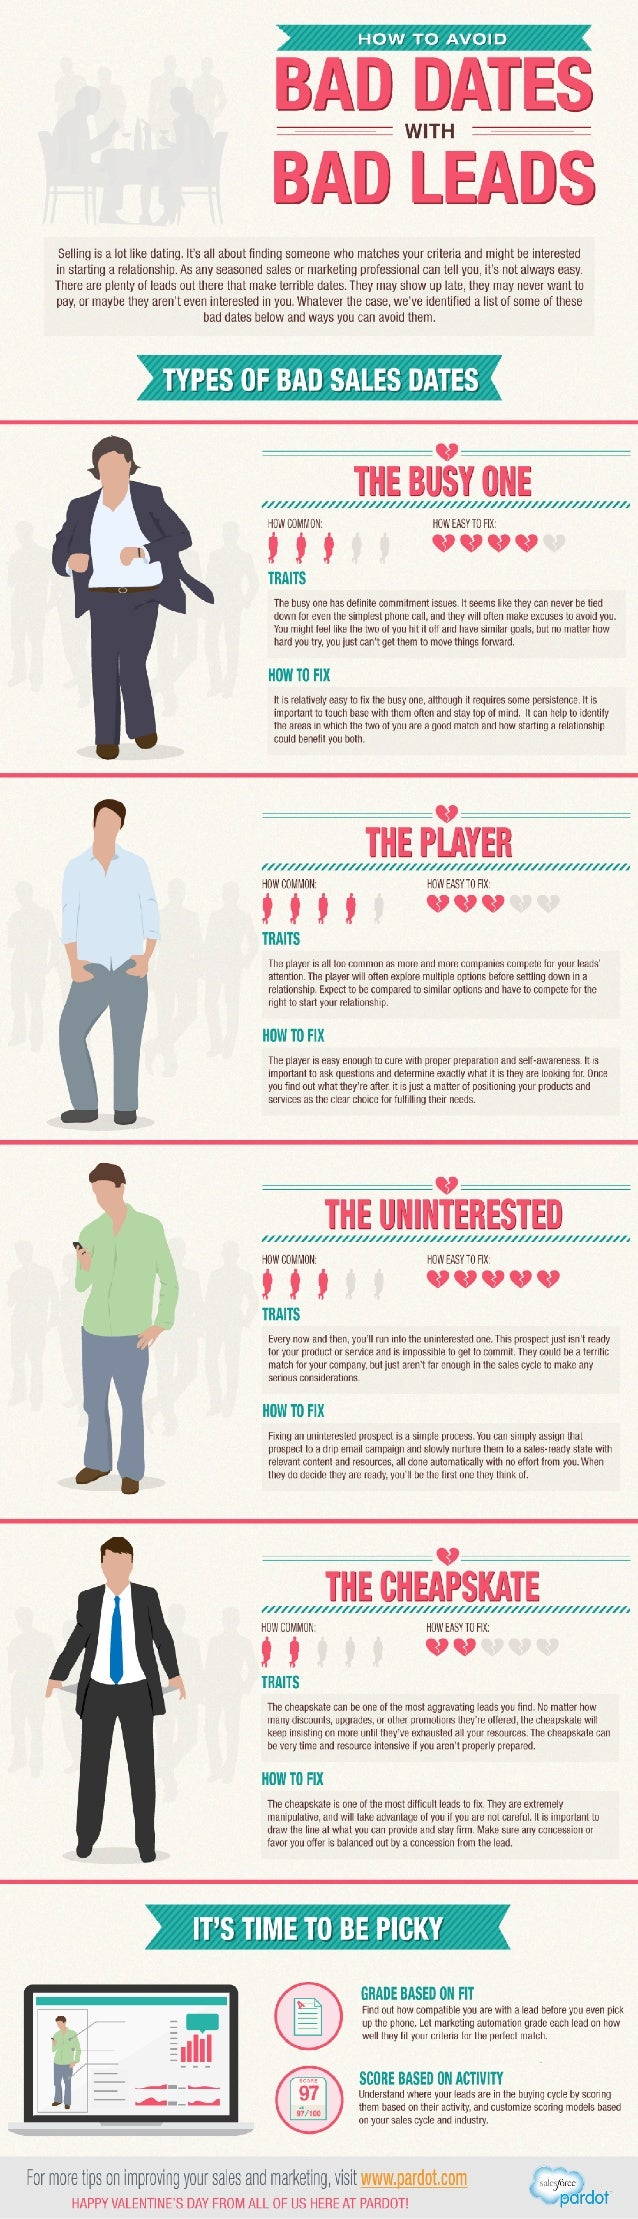 How to Avoid Bad Dates with Bad Leads [Infographic]